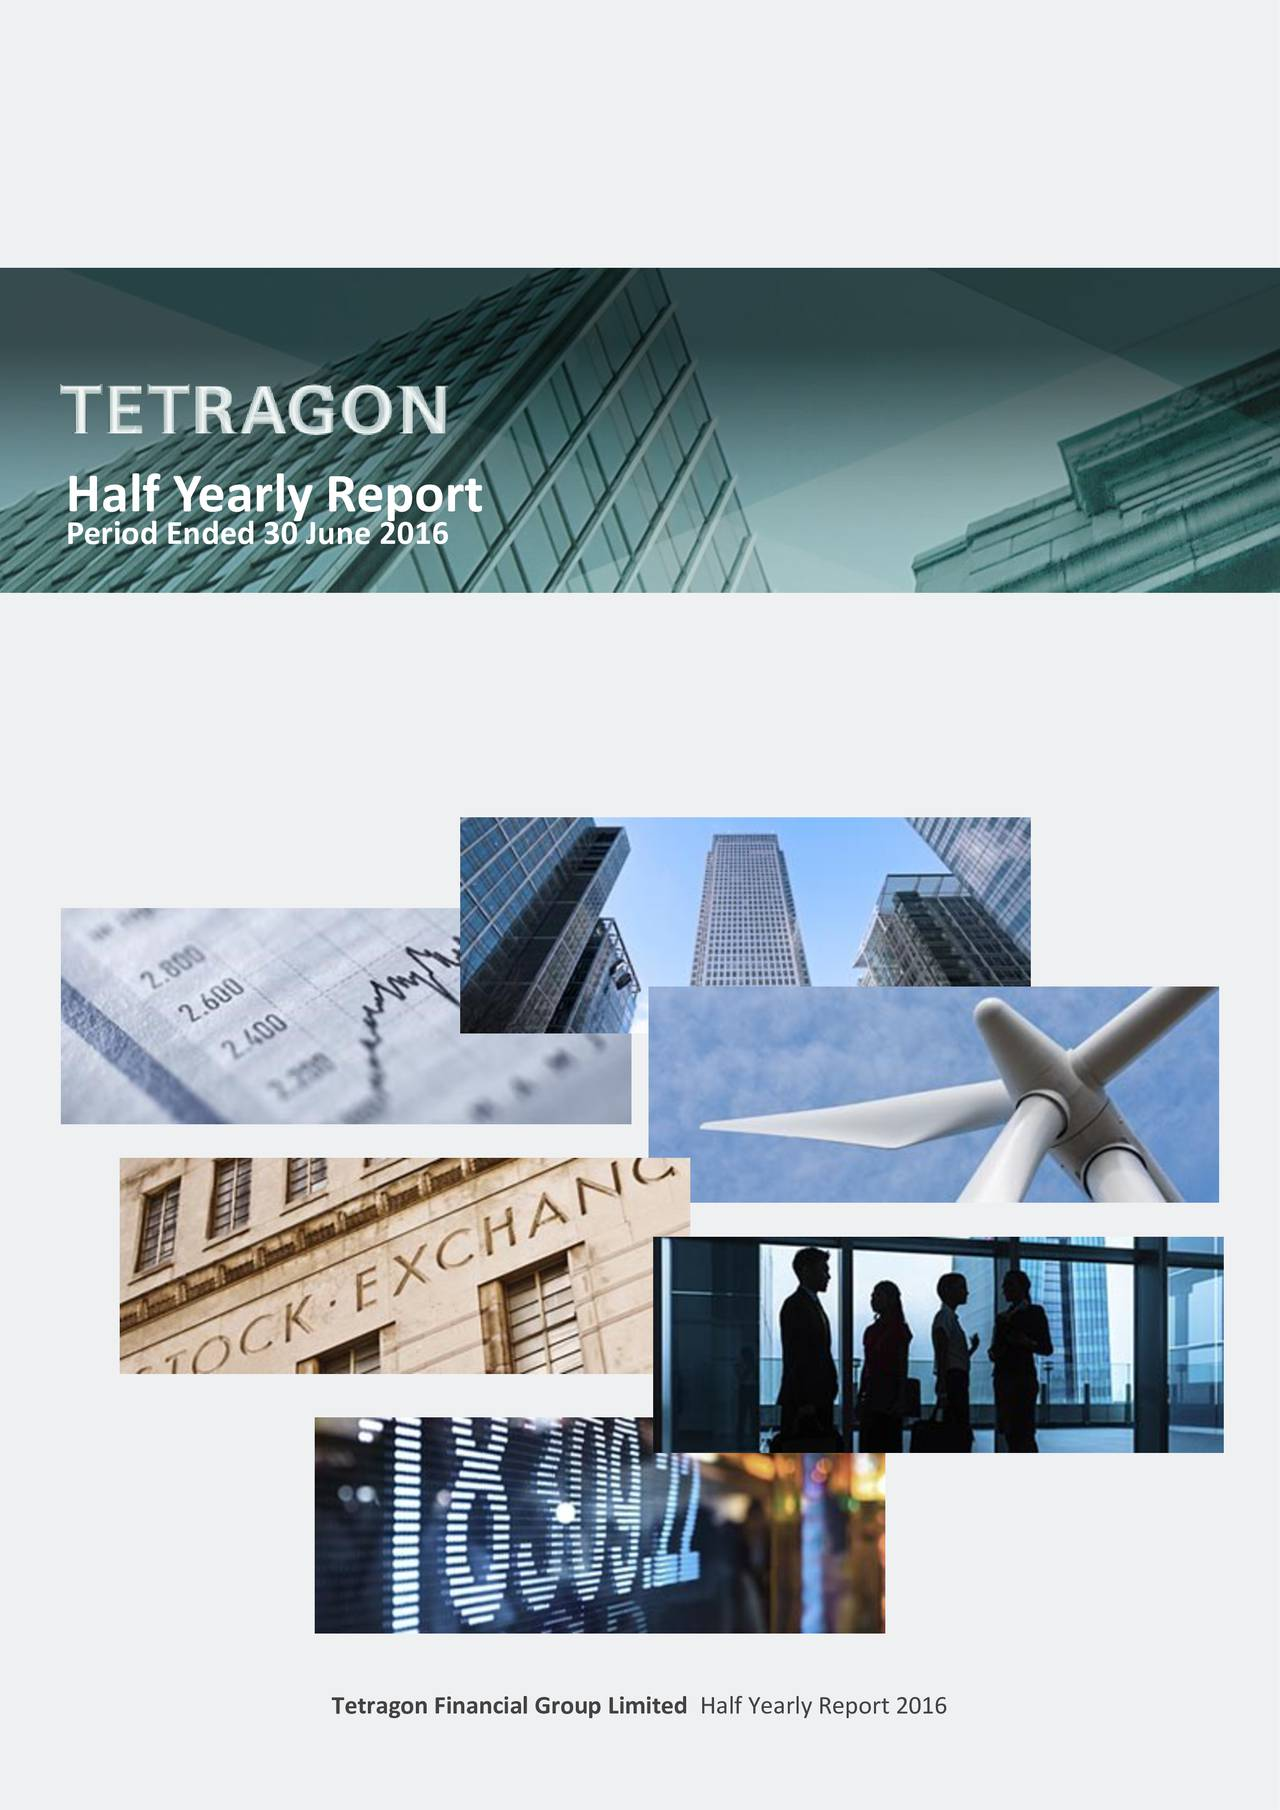 Period Ended 30 June 2016 Tetragon Financial Group Limited Half Yearly Report 2016